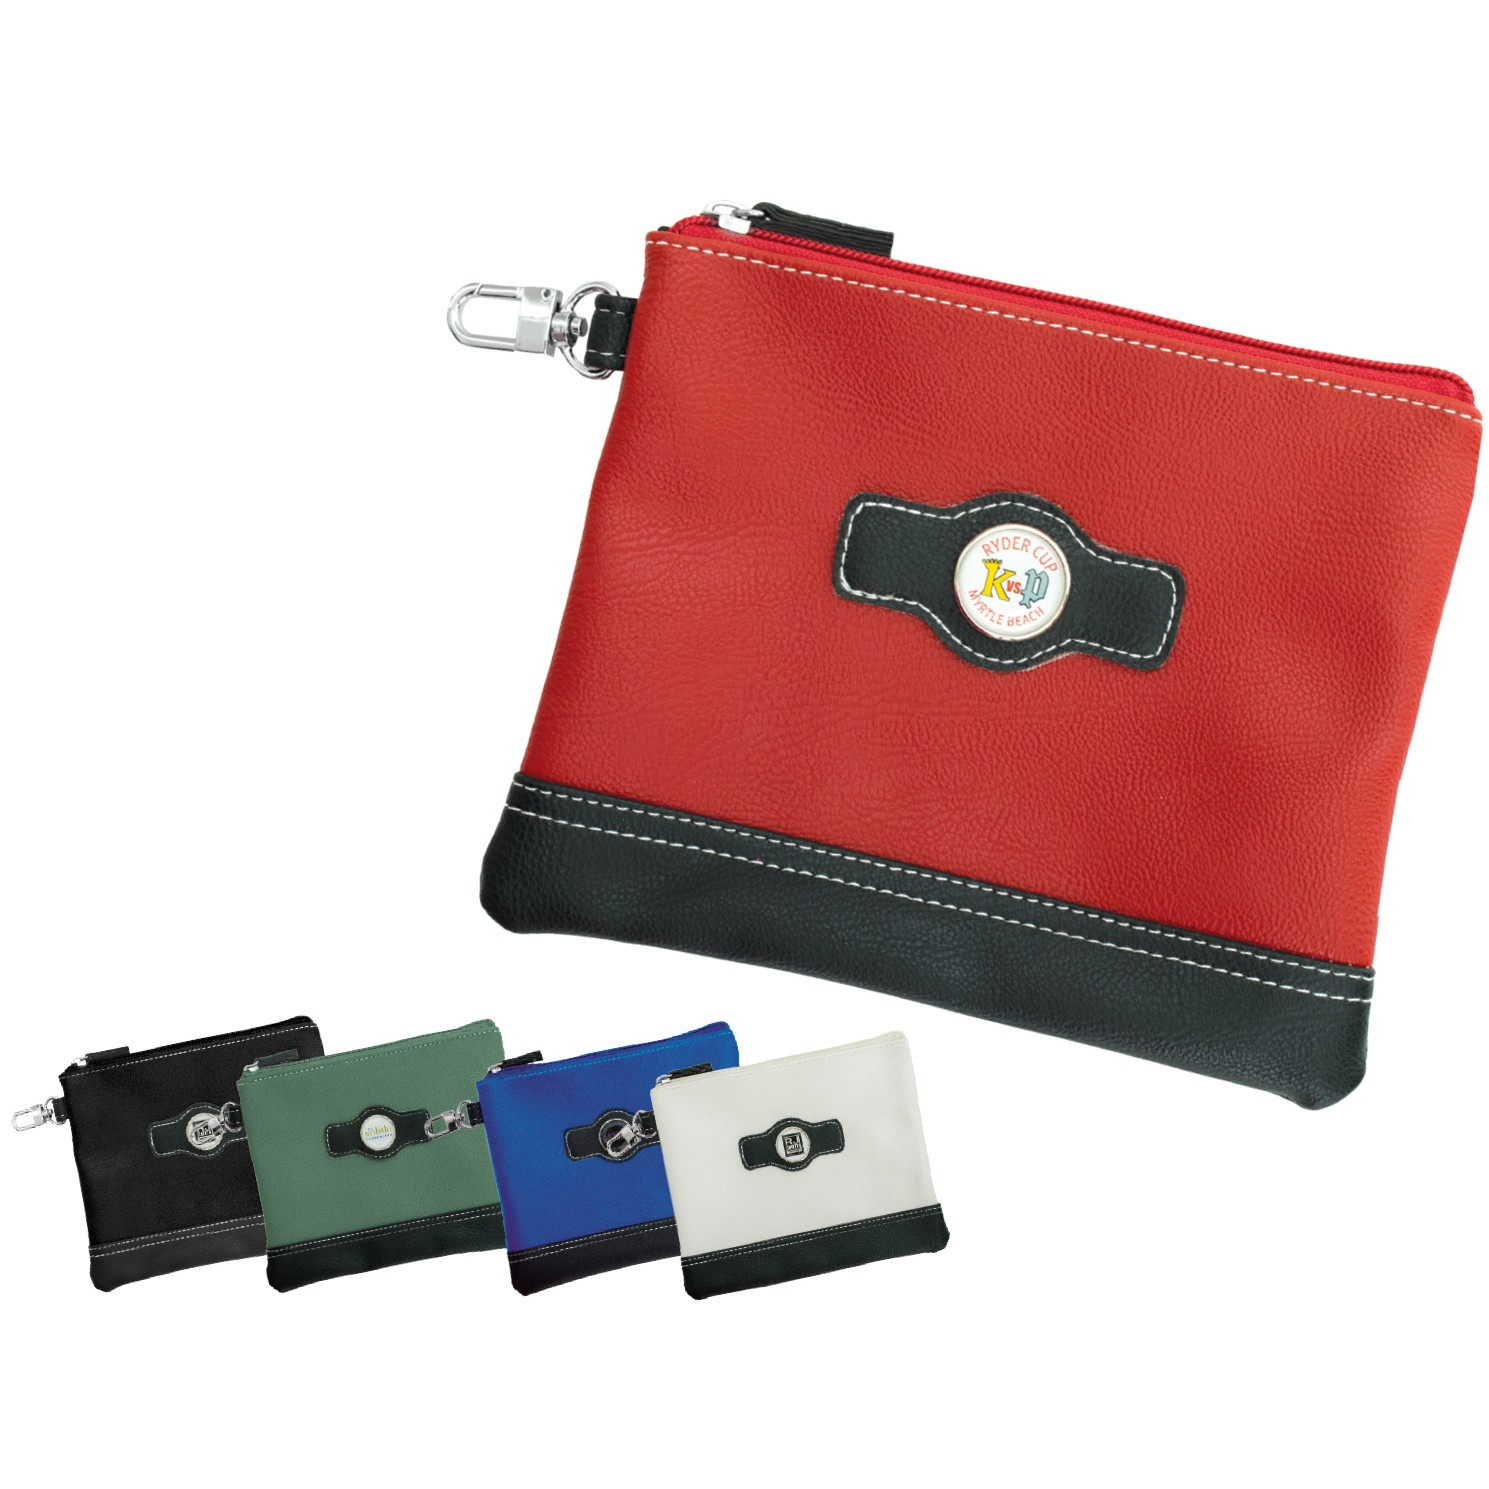 Leatherette Domed Zippered Valuables Pouches